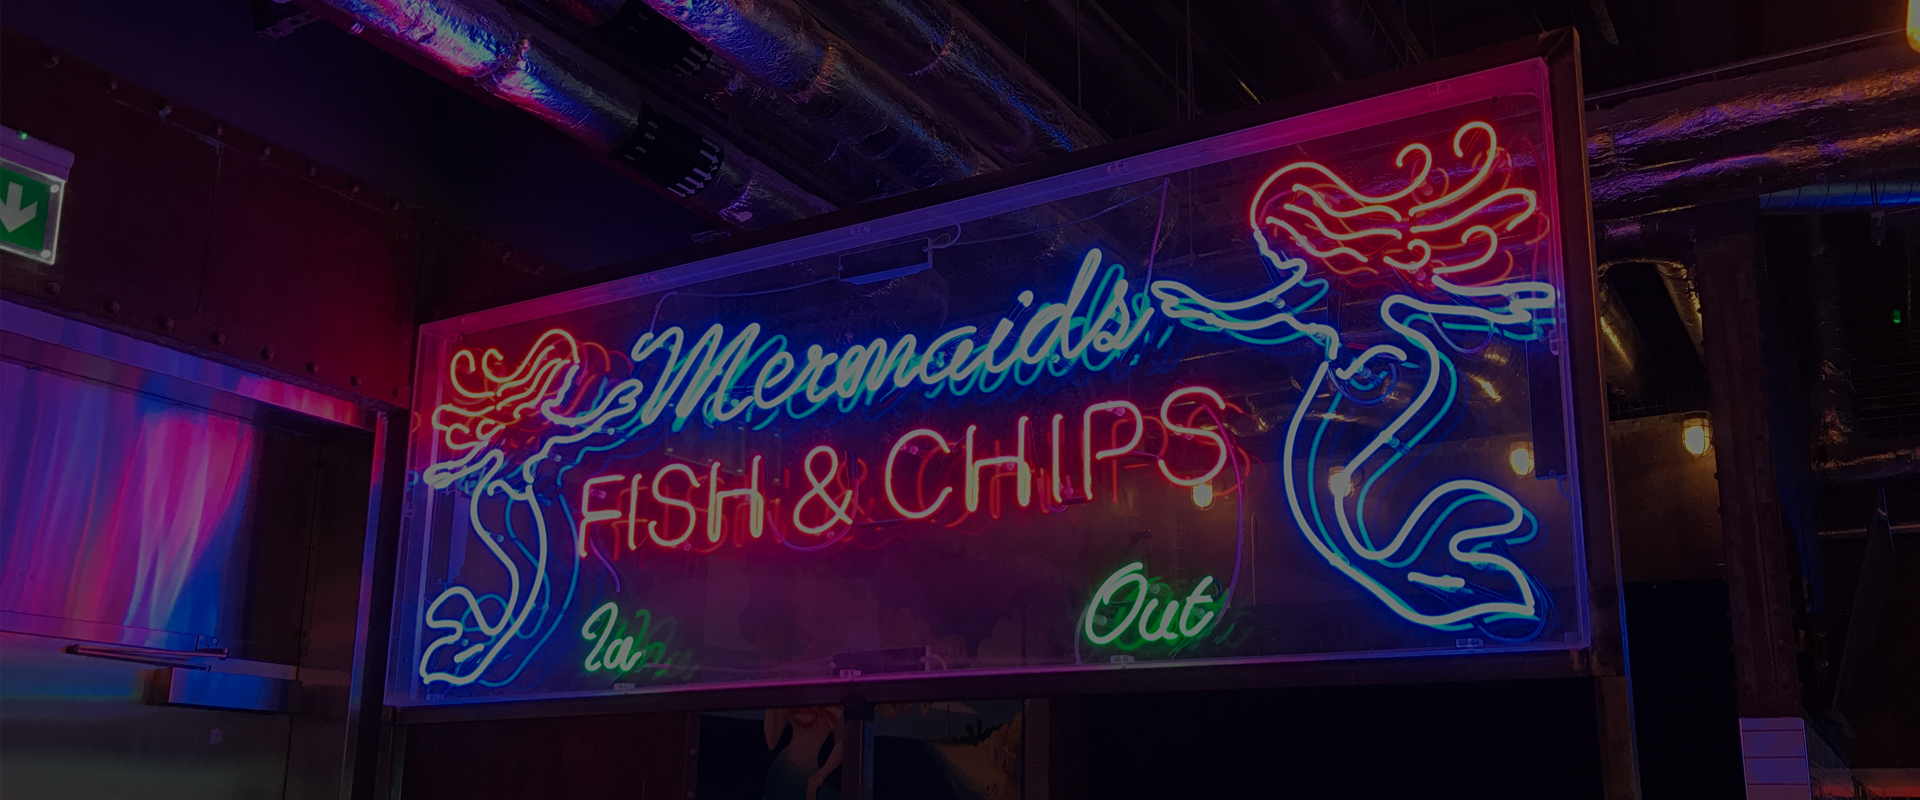 neon illuminated internal signage